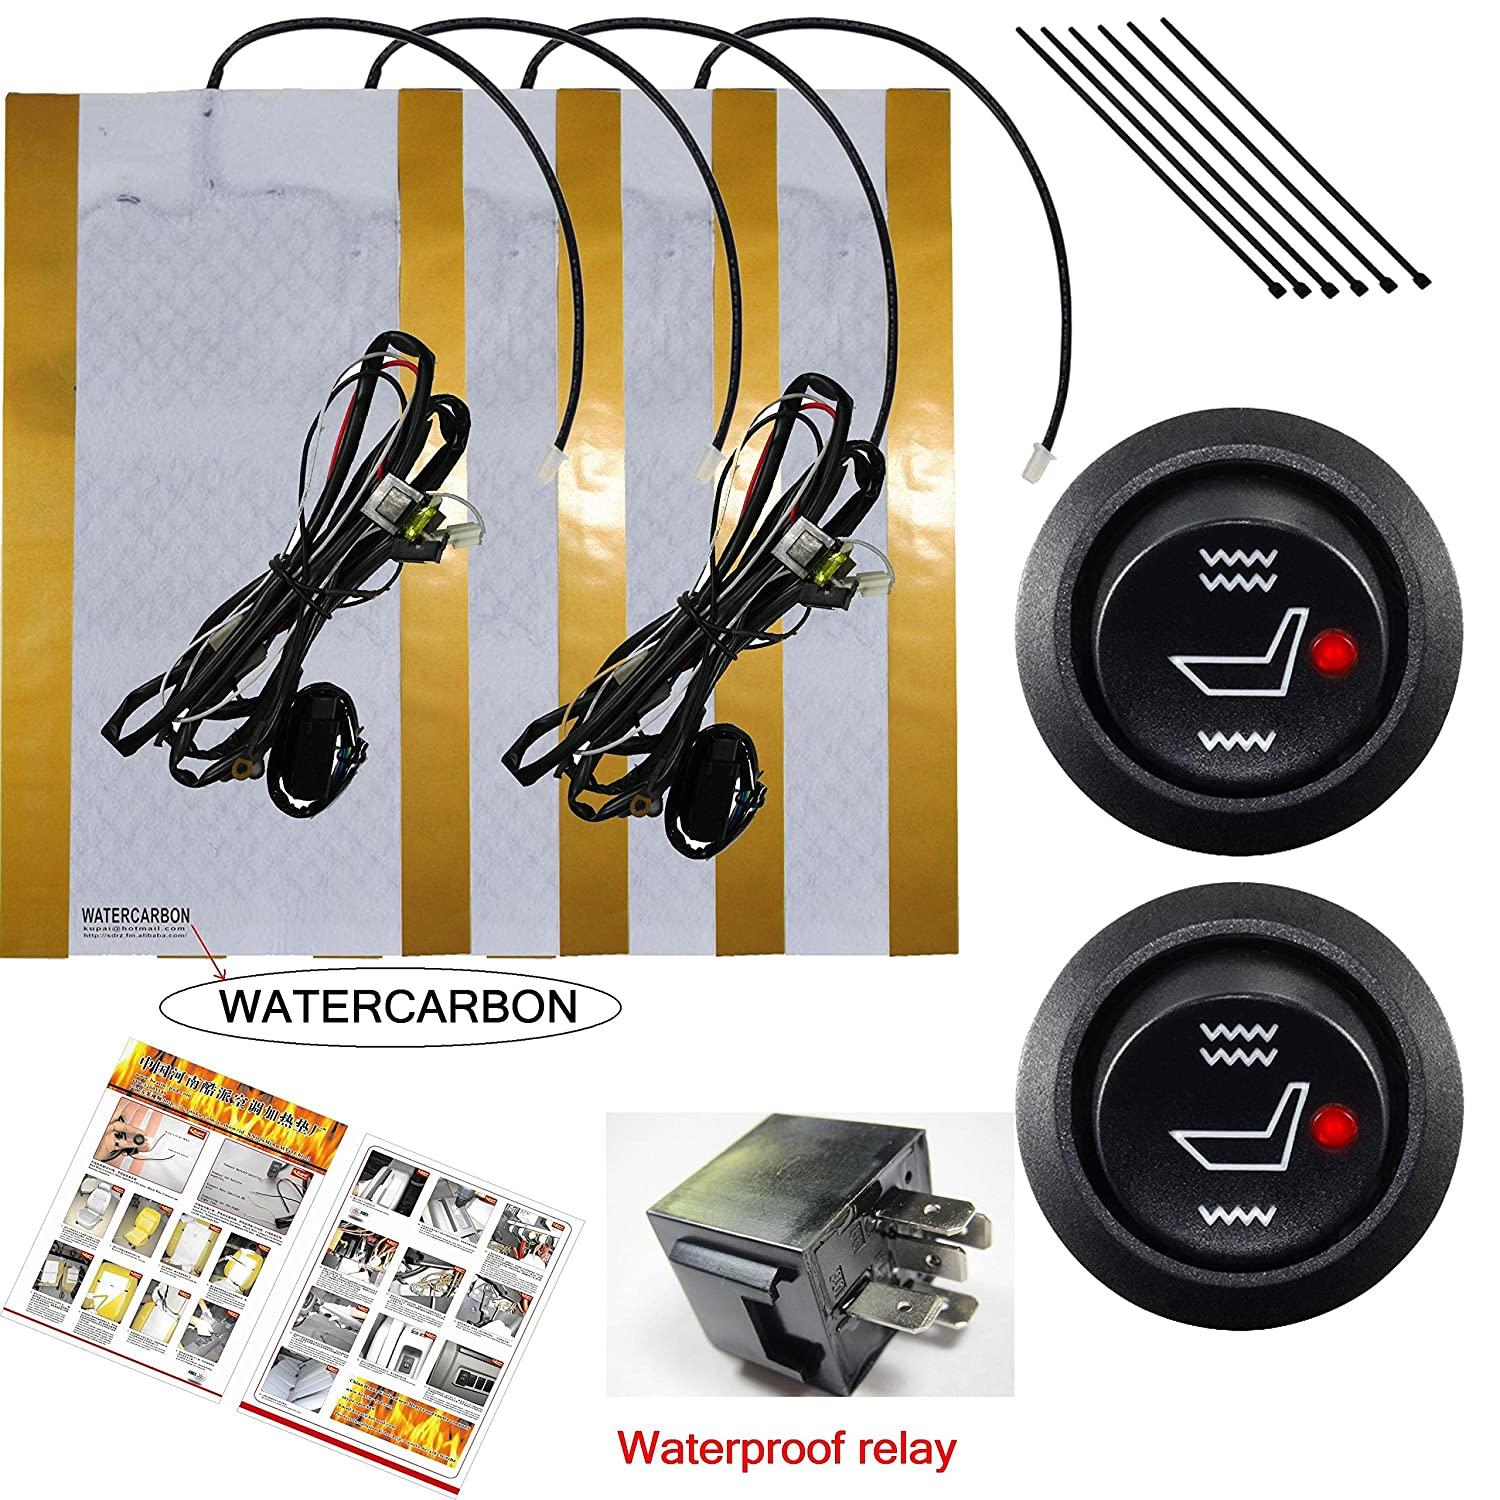 Watercarbon Water Carbon 12v Premium Heated Seat Kits Trailer Camper Adapter Circuit Etc Wiring Diagrams 1996 Ford Explorer For Two Seats Universal Electronic Equipment Dual Settings Electronics